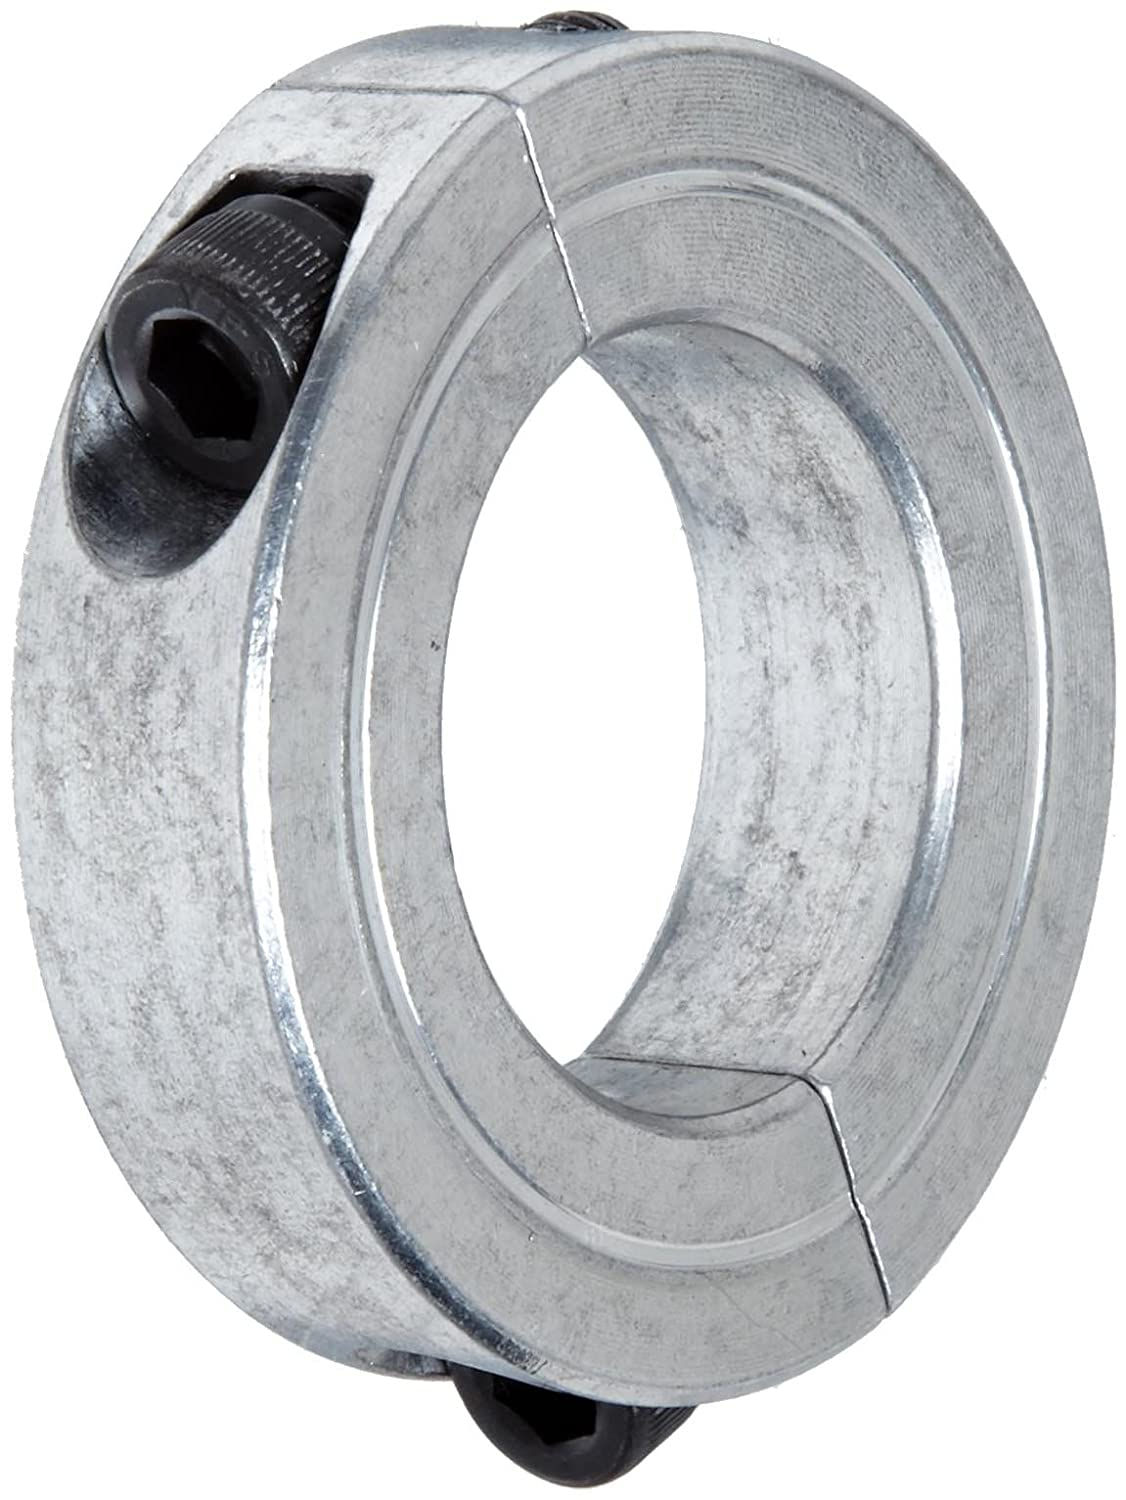 1-7//8 OD 1-1//8 Bore Size Climax Metal 2C-112-A Aluminum Two-Piece Clamping Collar With 1//4-28 x 3//4 Set Screw